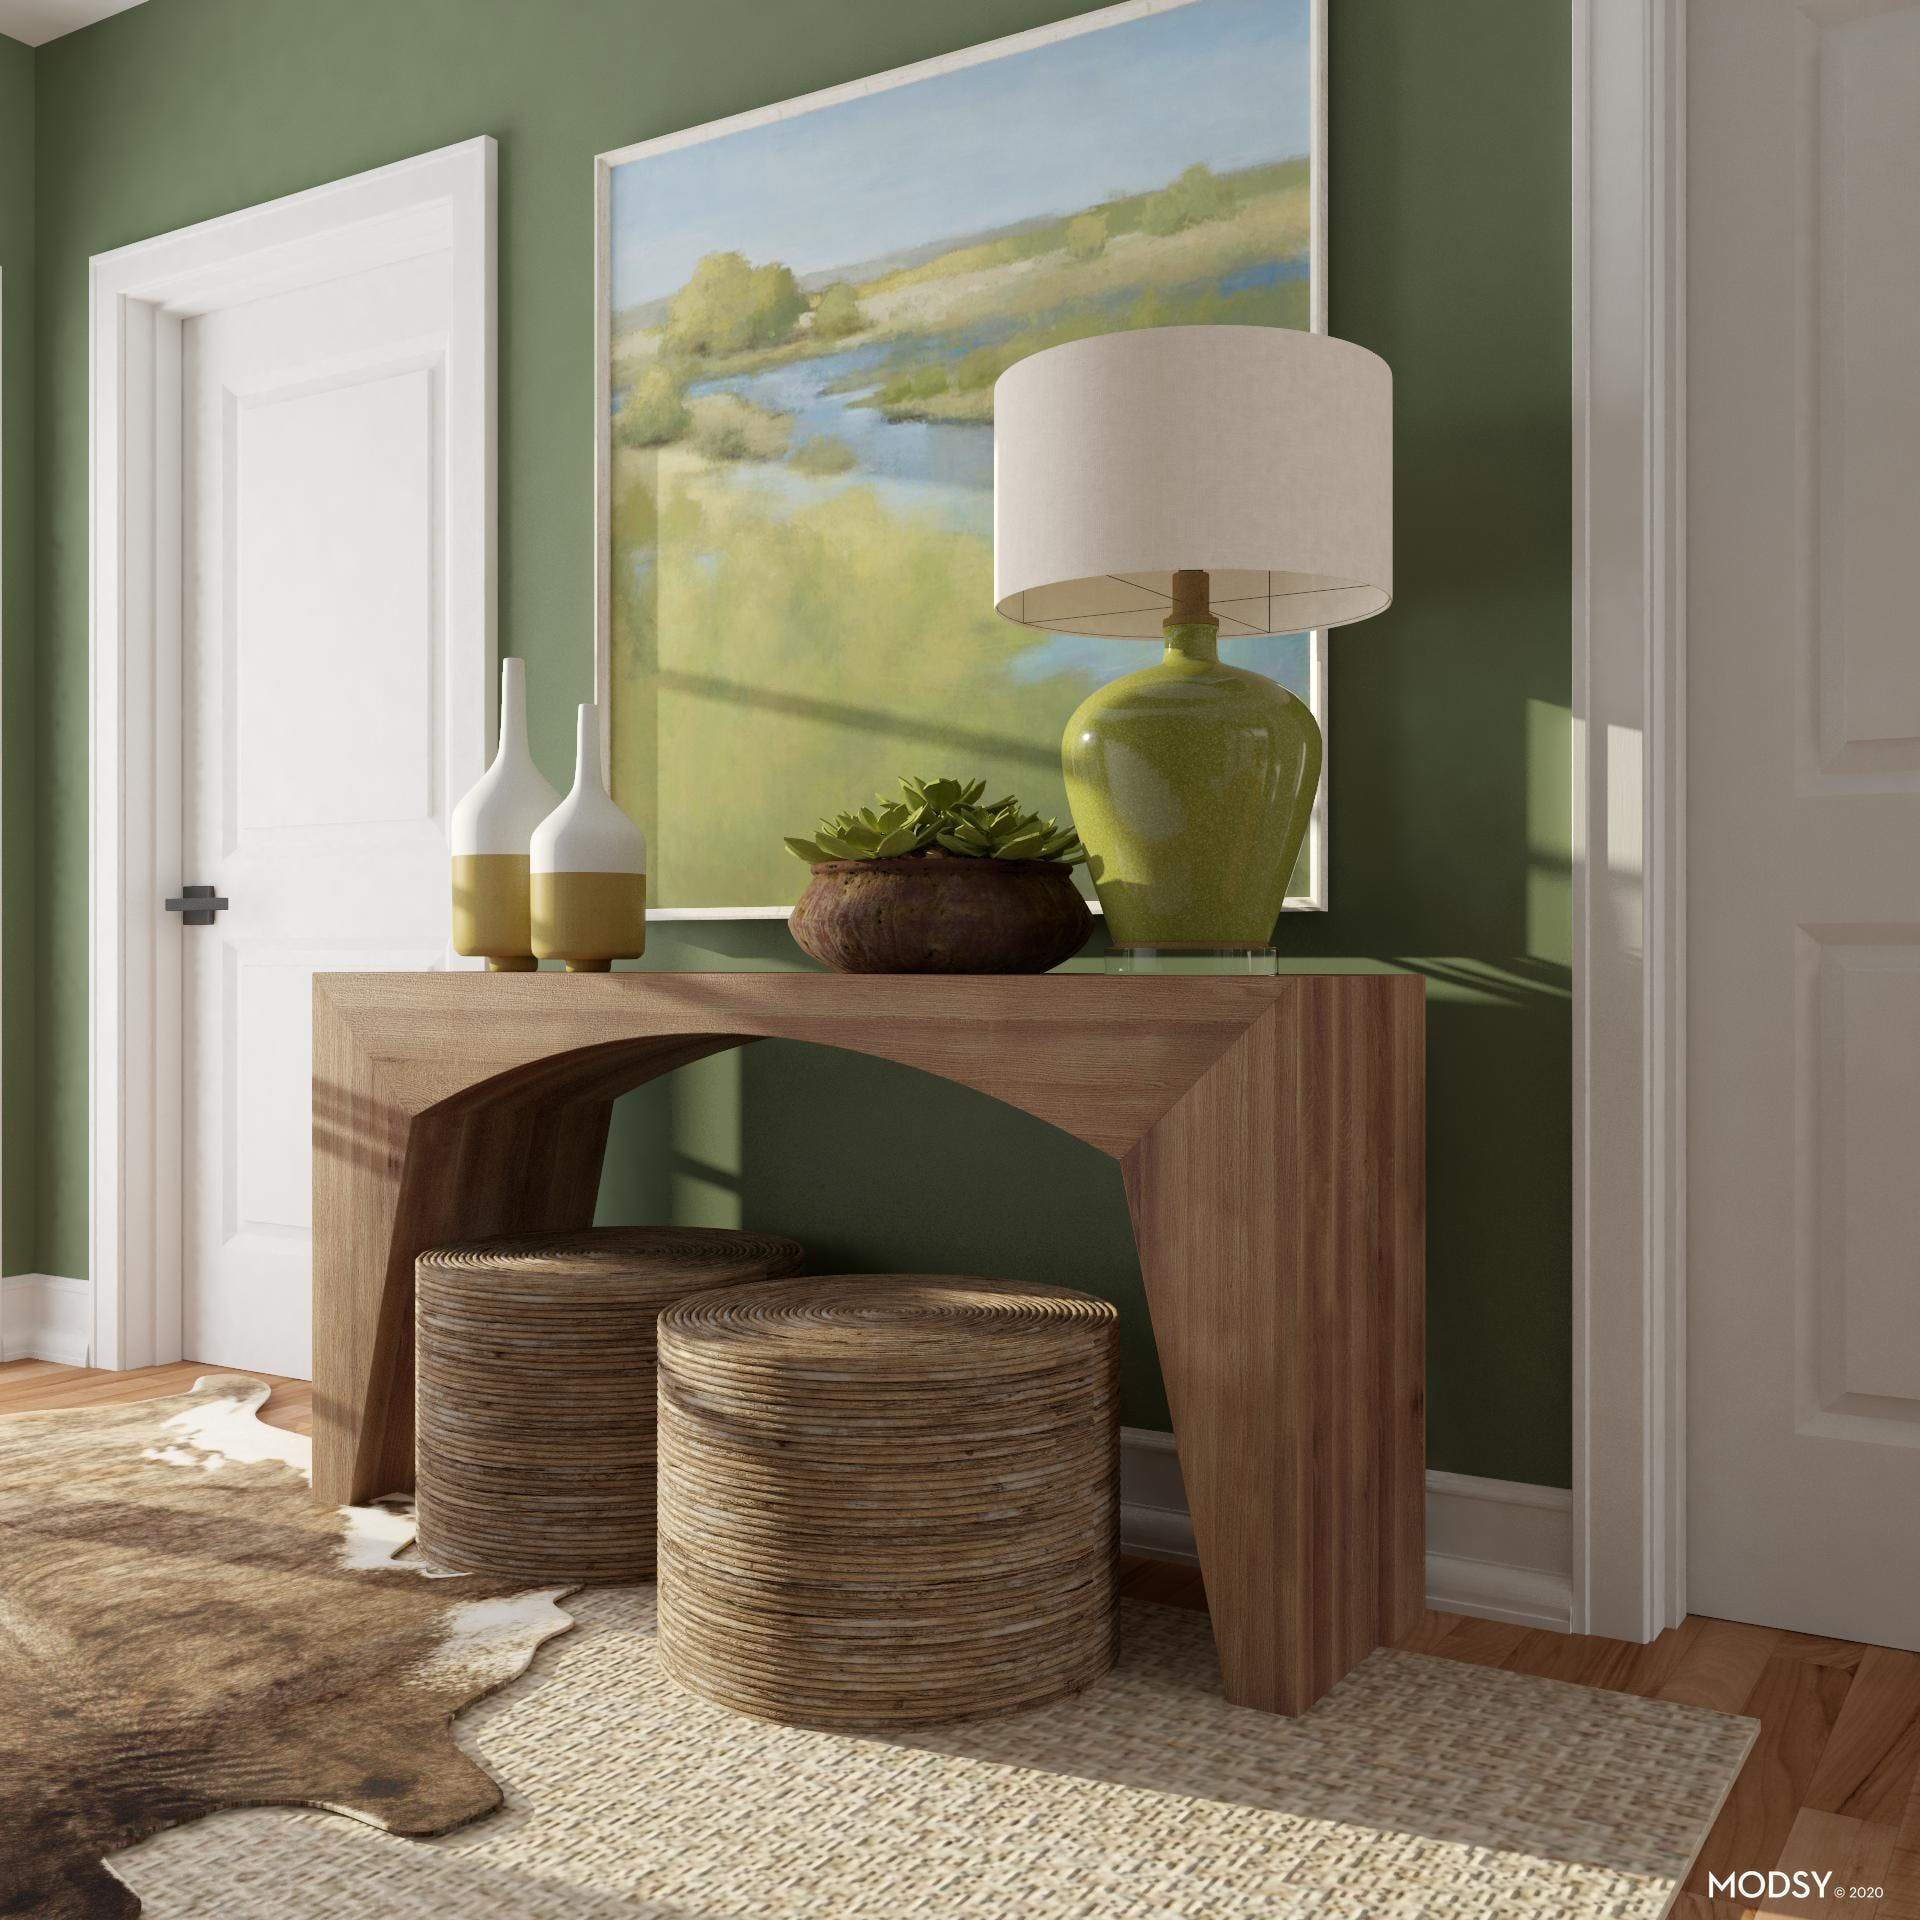 Balancing Visual Weight: Entry Vignette